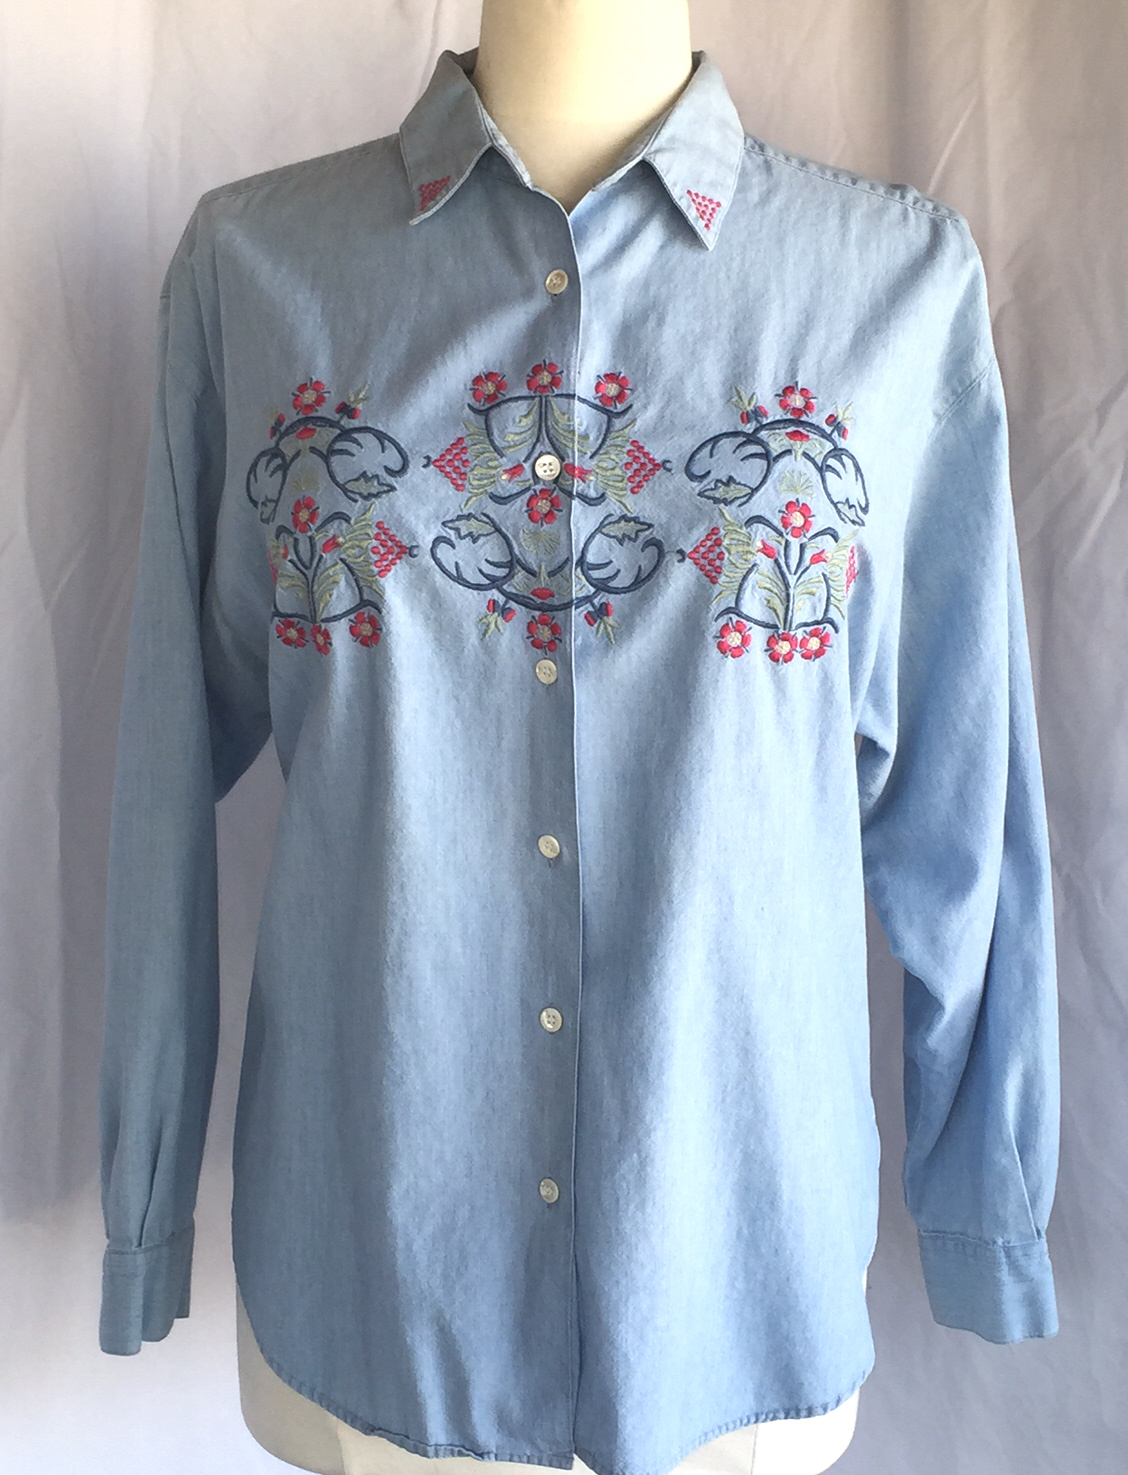 Blue chambray embroidered shirt women 39 s sz l best american for Blue chambray shirt women s